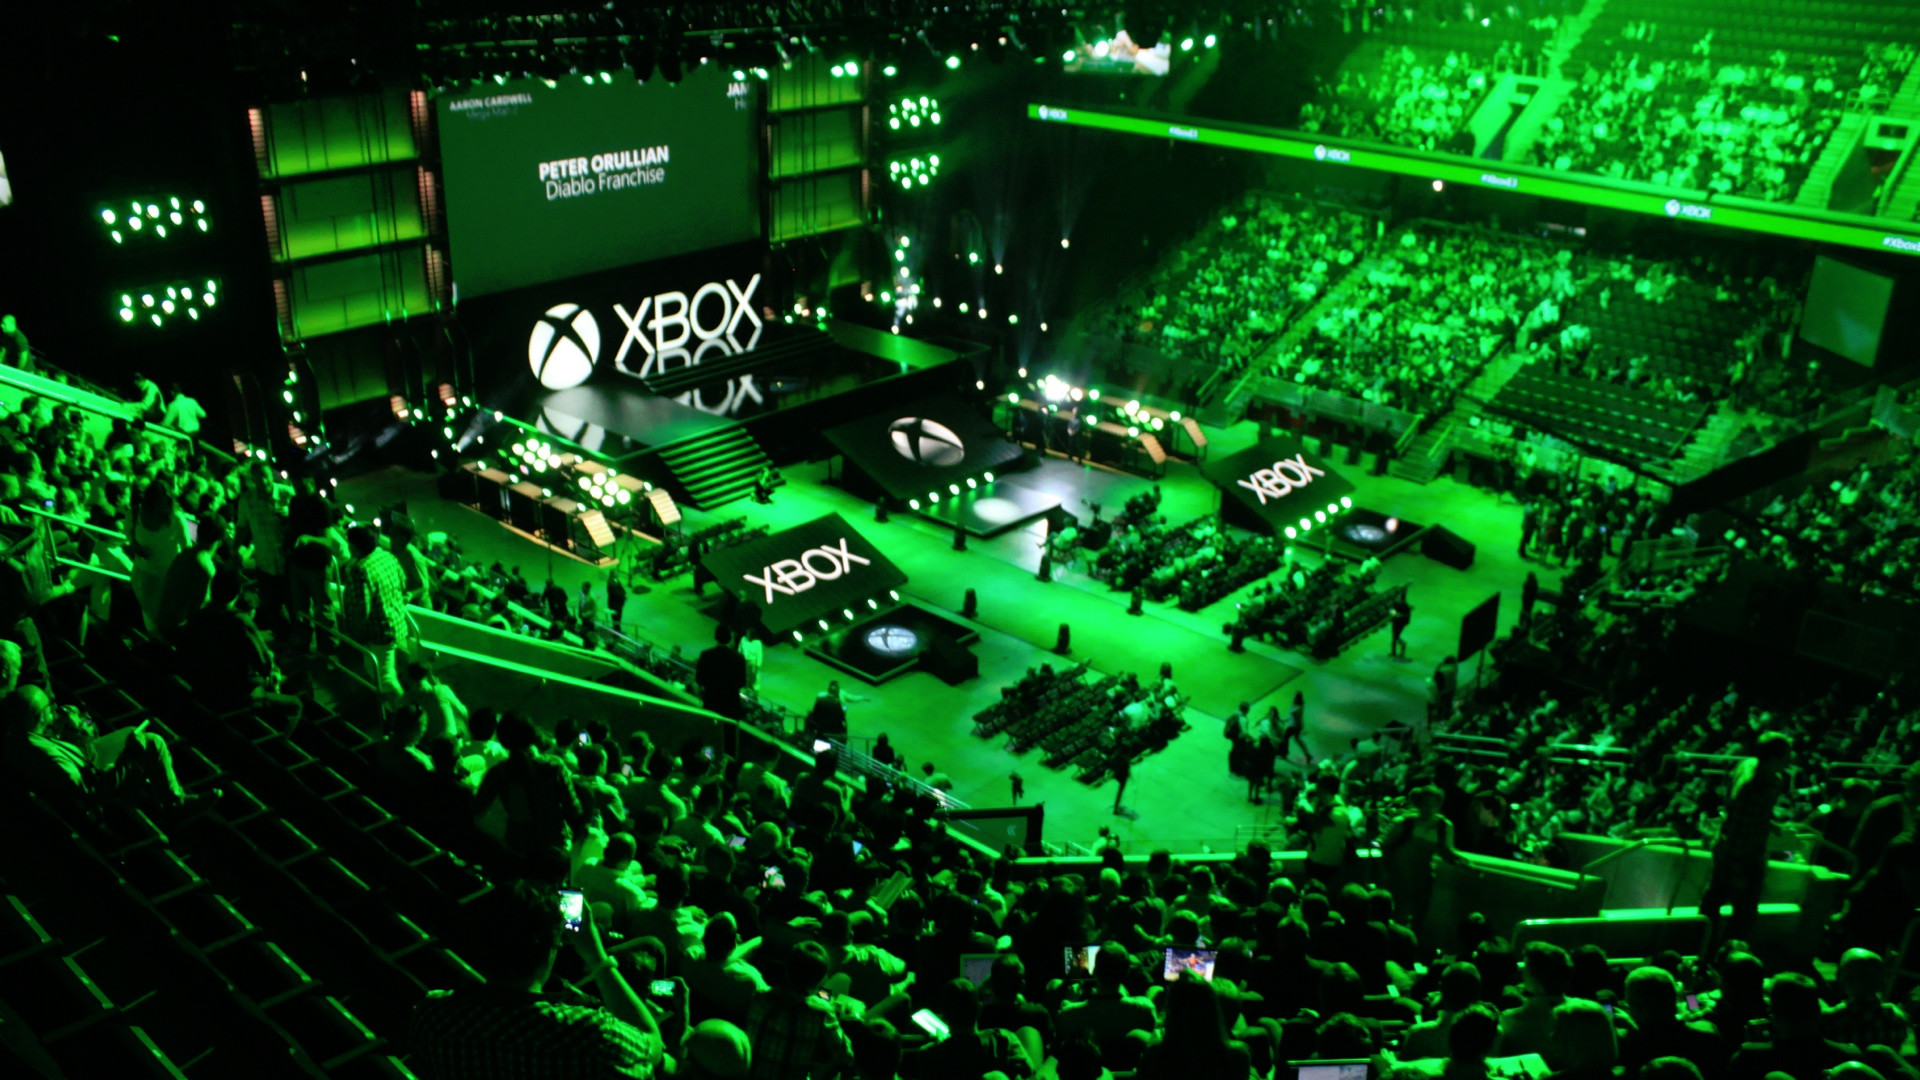 The evolution of presentations at E3 - editorial